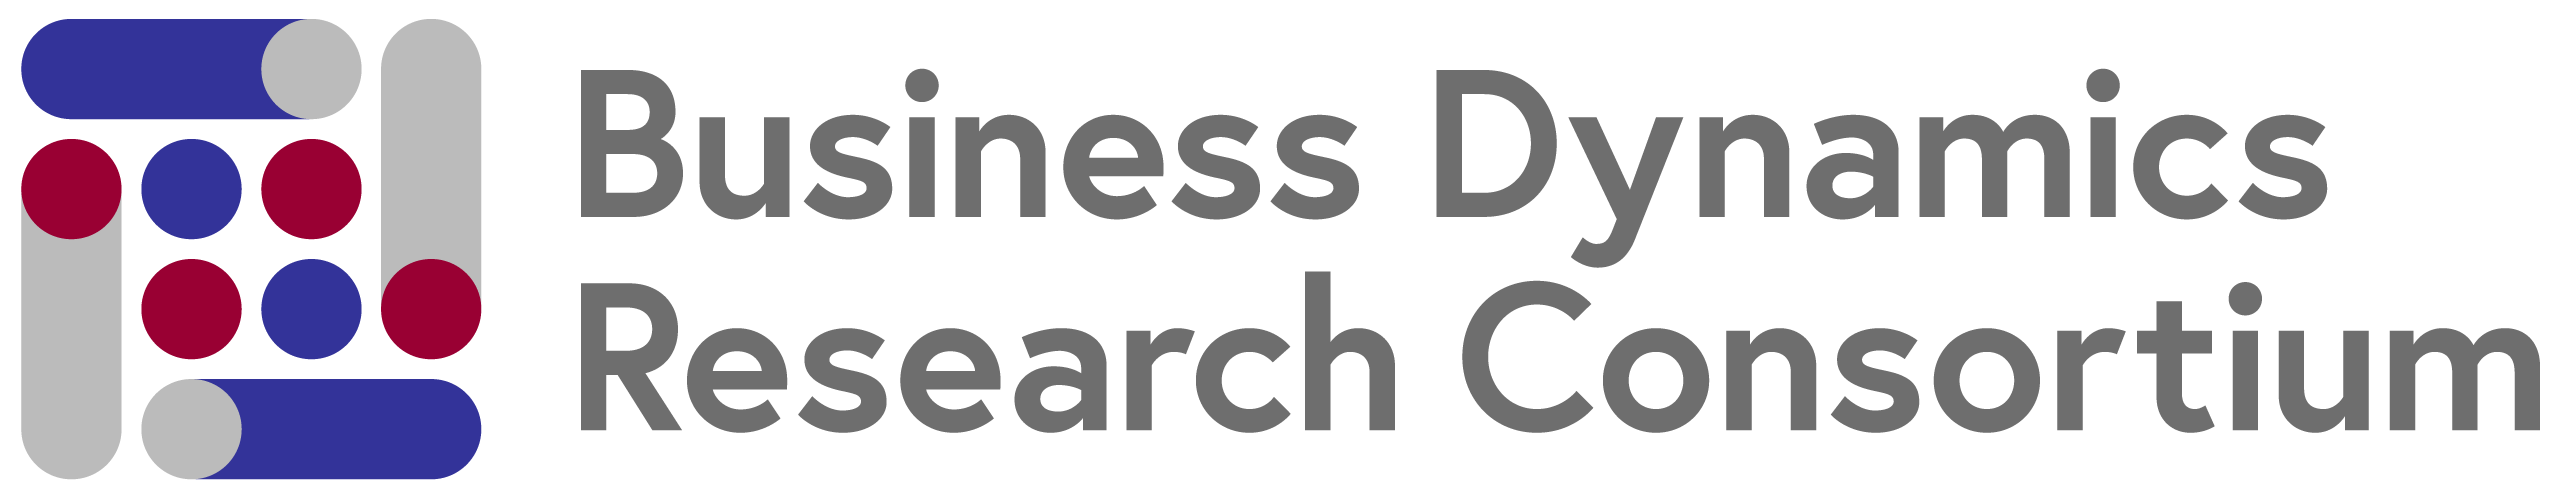 Business Dynamics Research Consortium